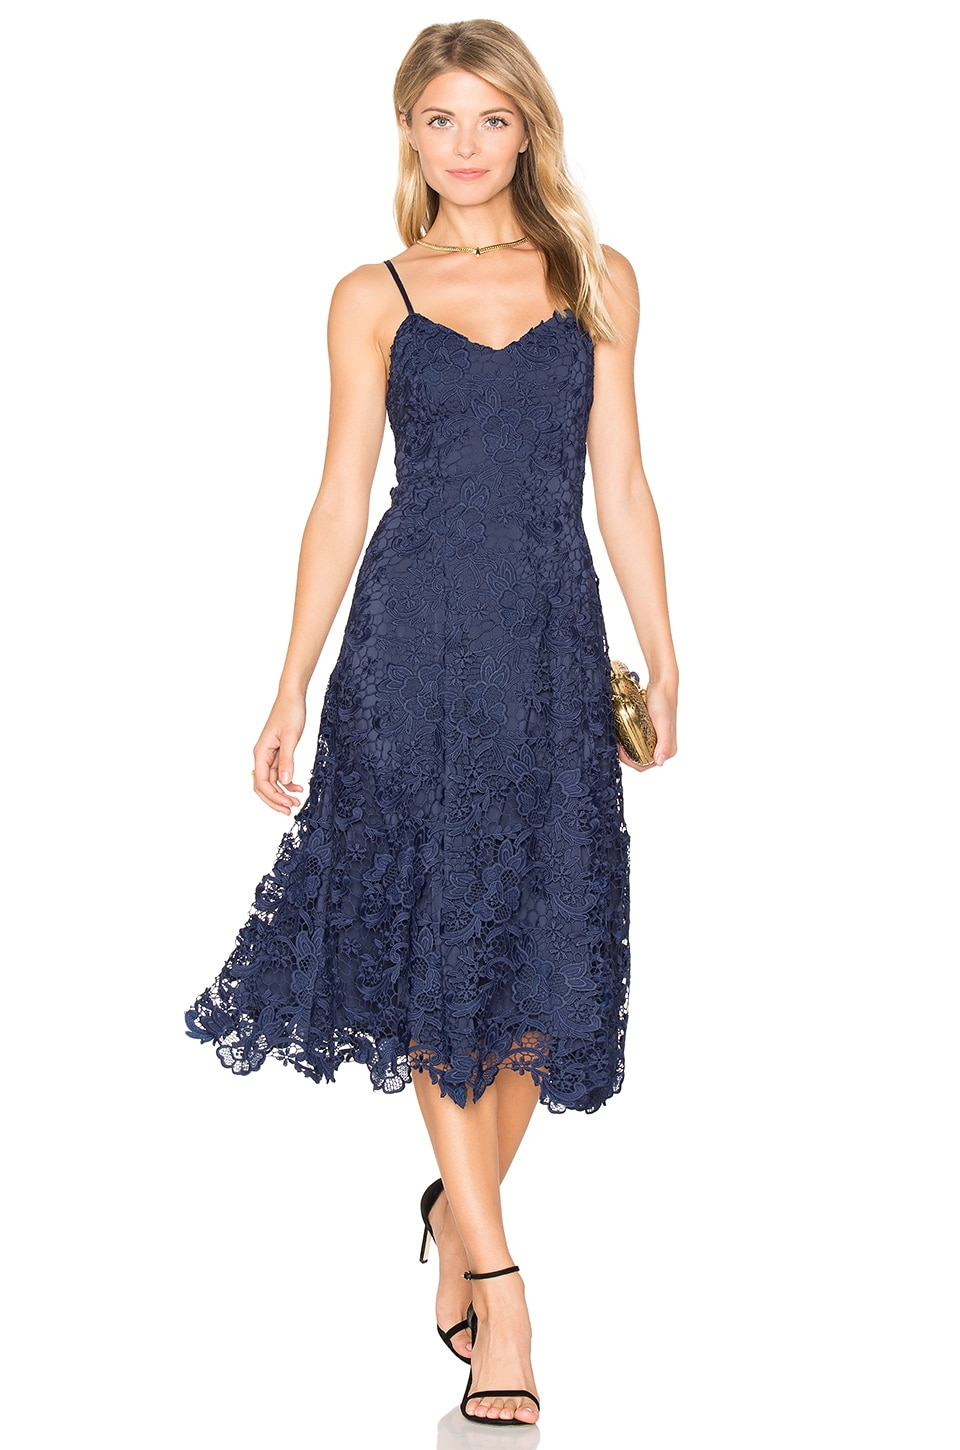 Alice + Olivia Naomi Flare Dress in Sapphire